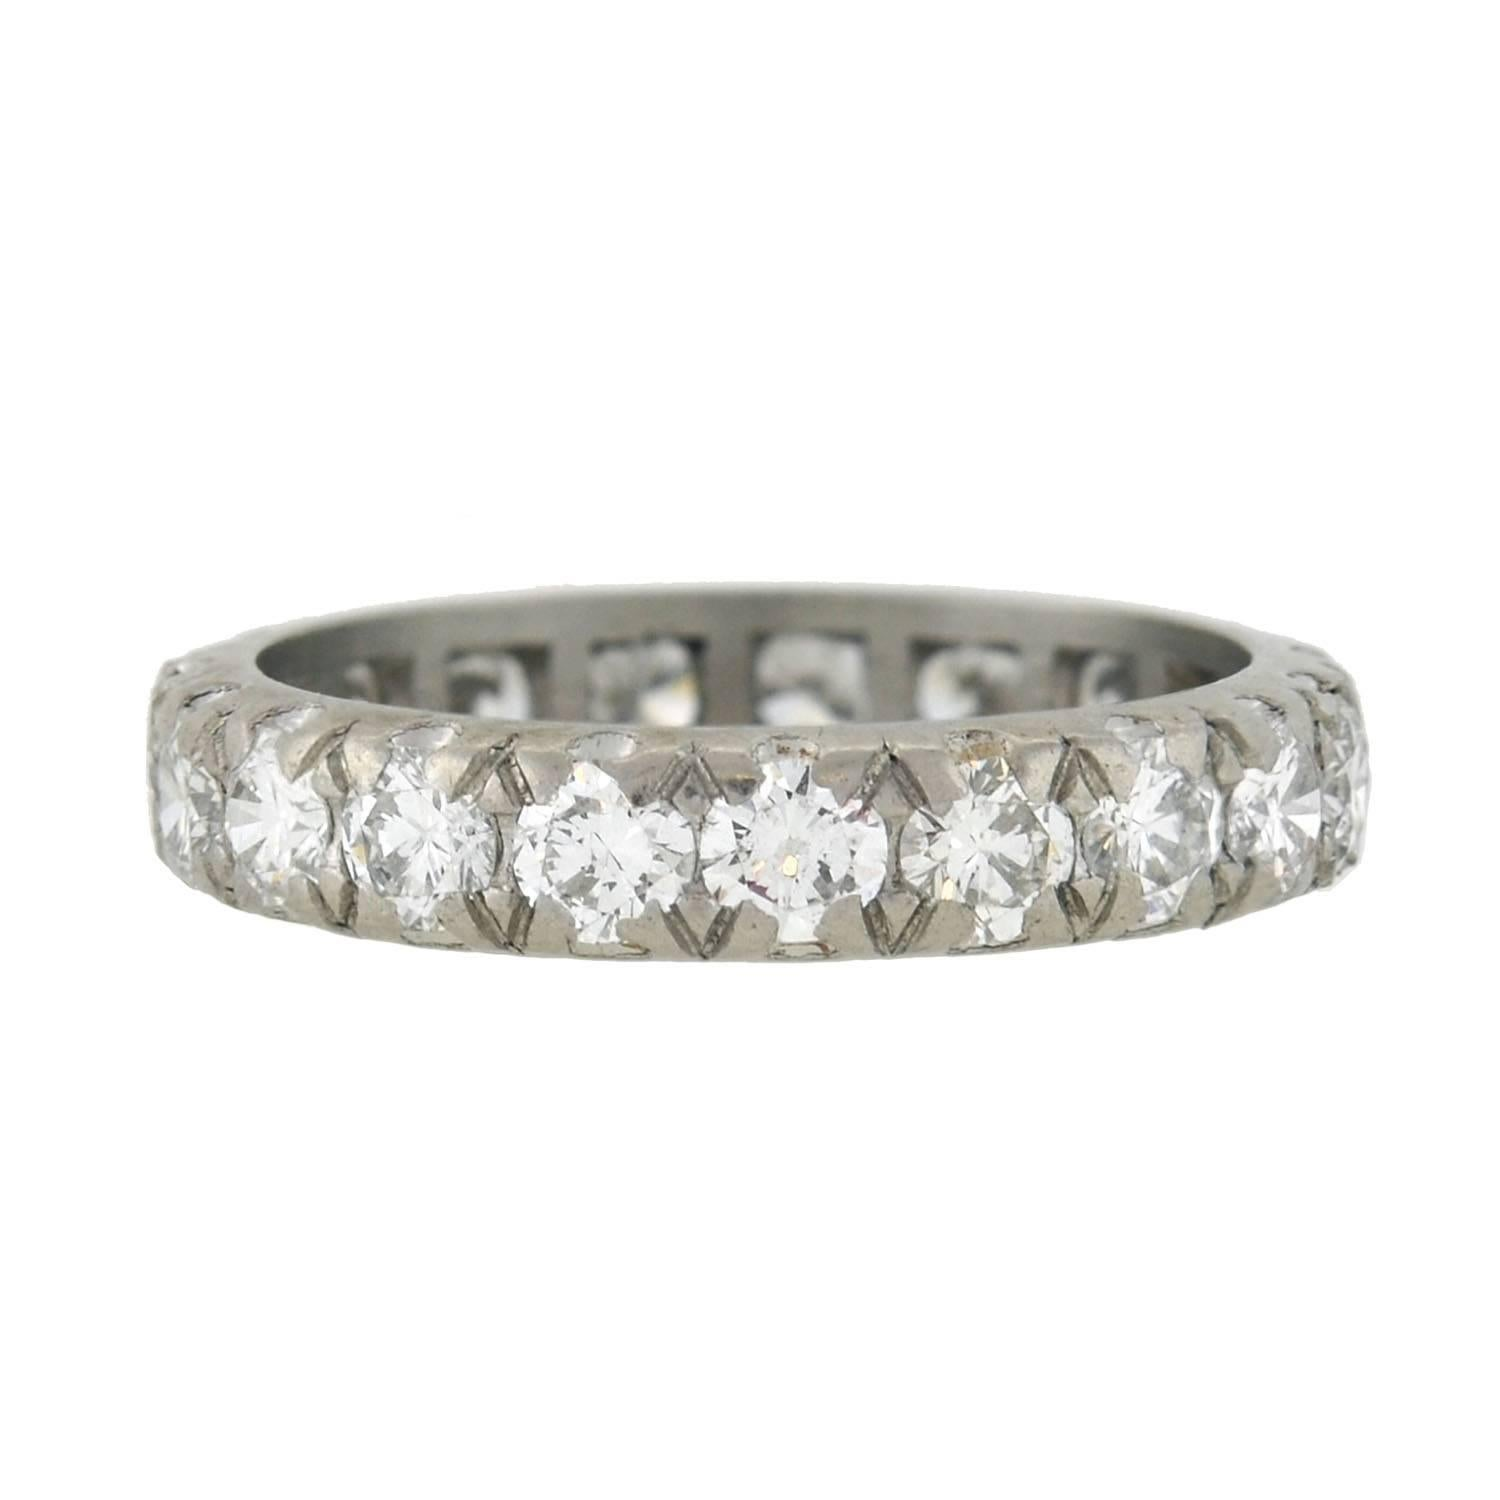 bands ring anniversary band baguette ben bridge carat jewelry jeweler diamond platinum round in